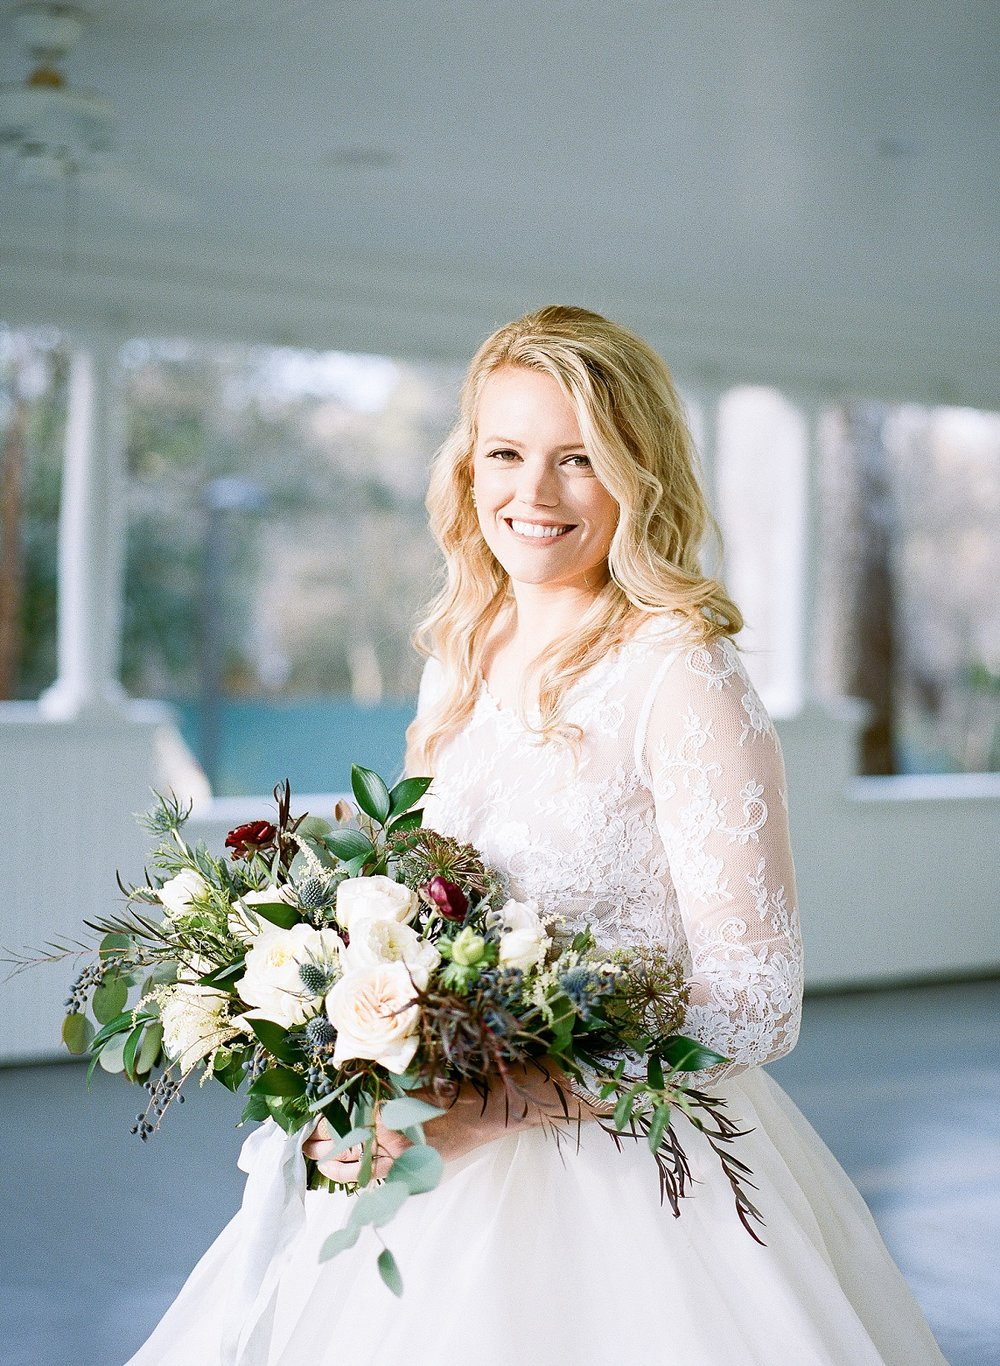 Winter wedding at Ritchie Hill, Charlotte film photographer